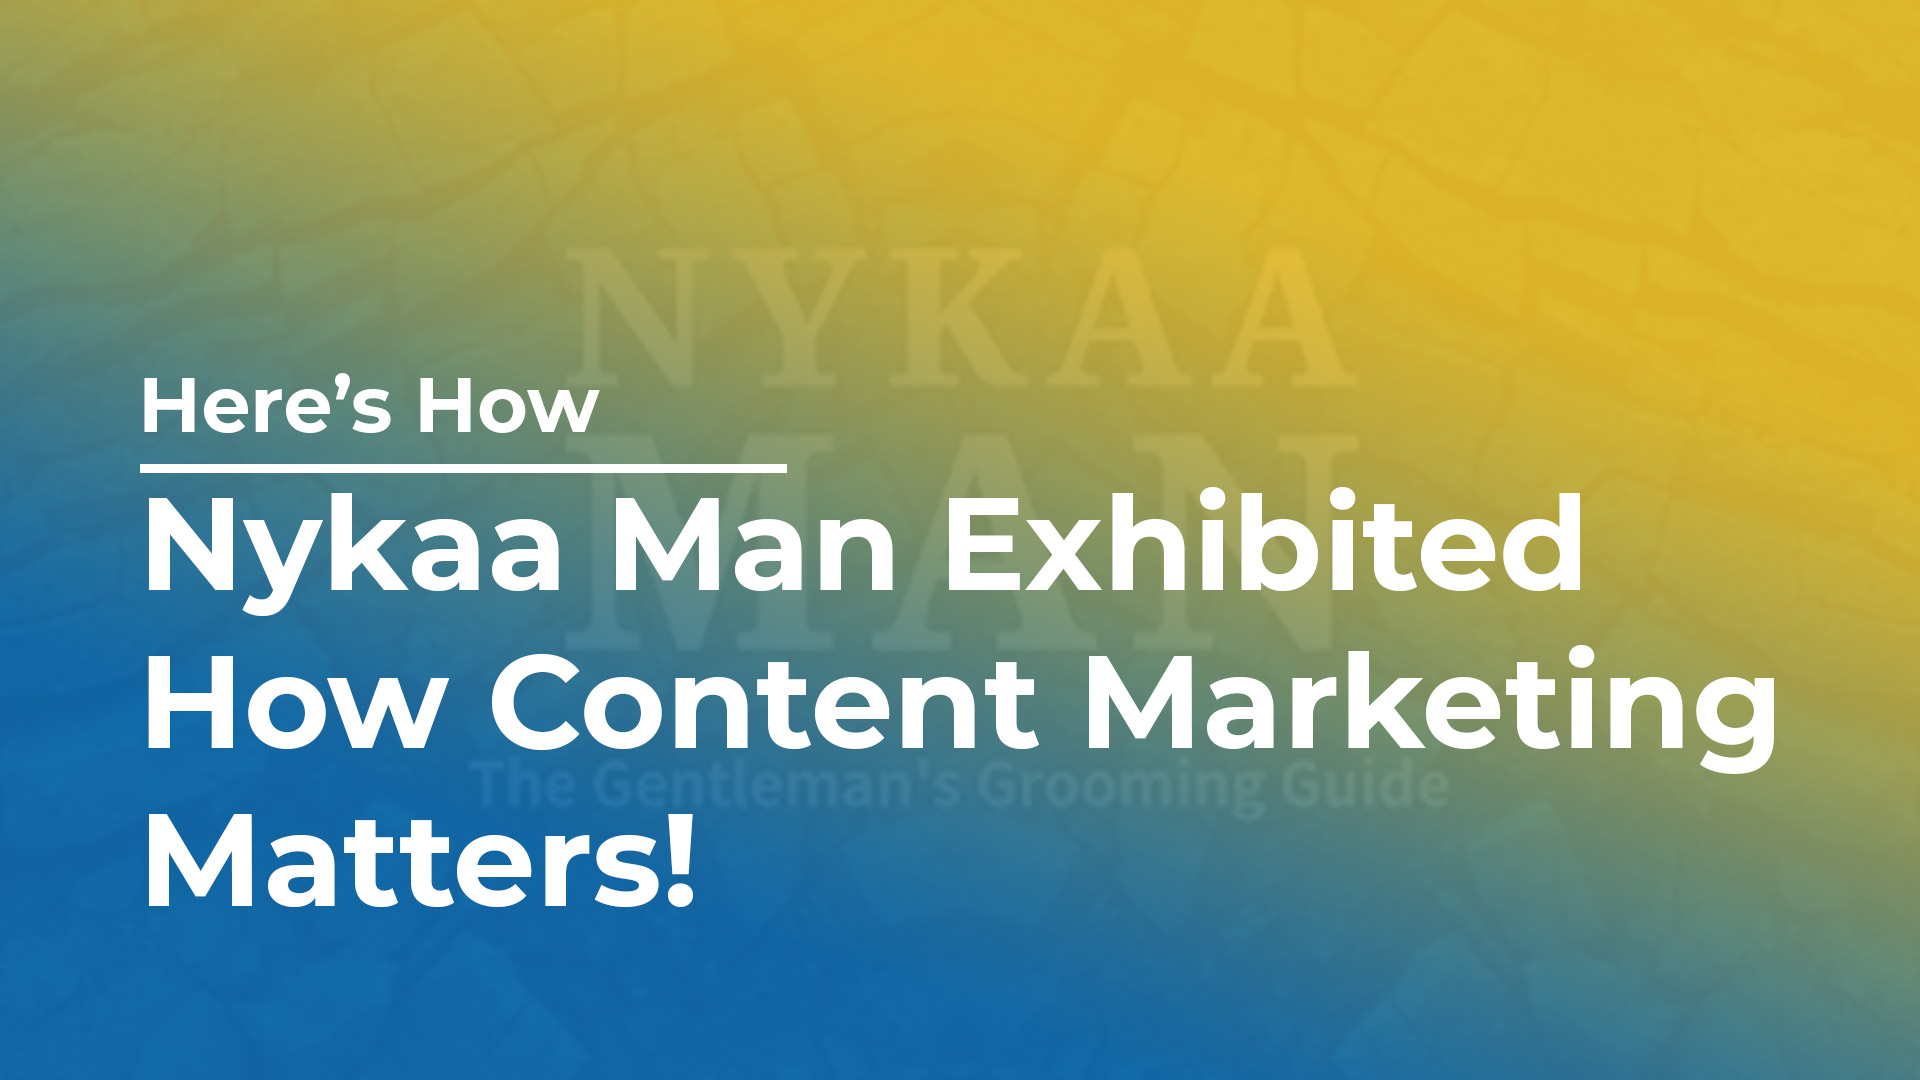 Nykaa Man Exhibited